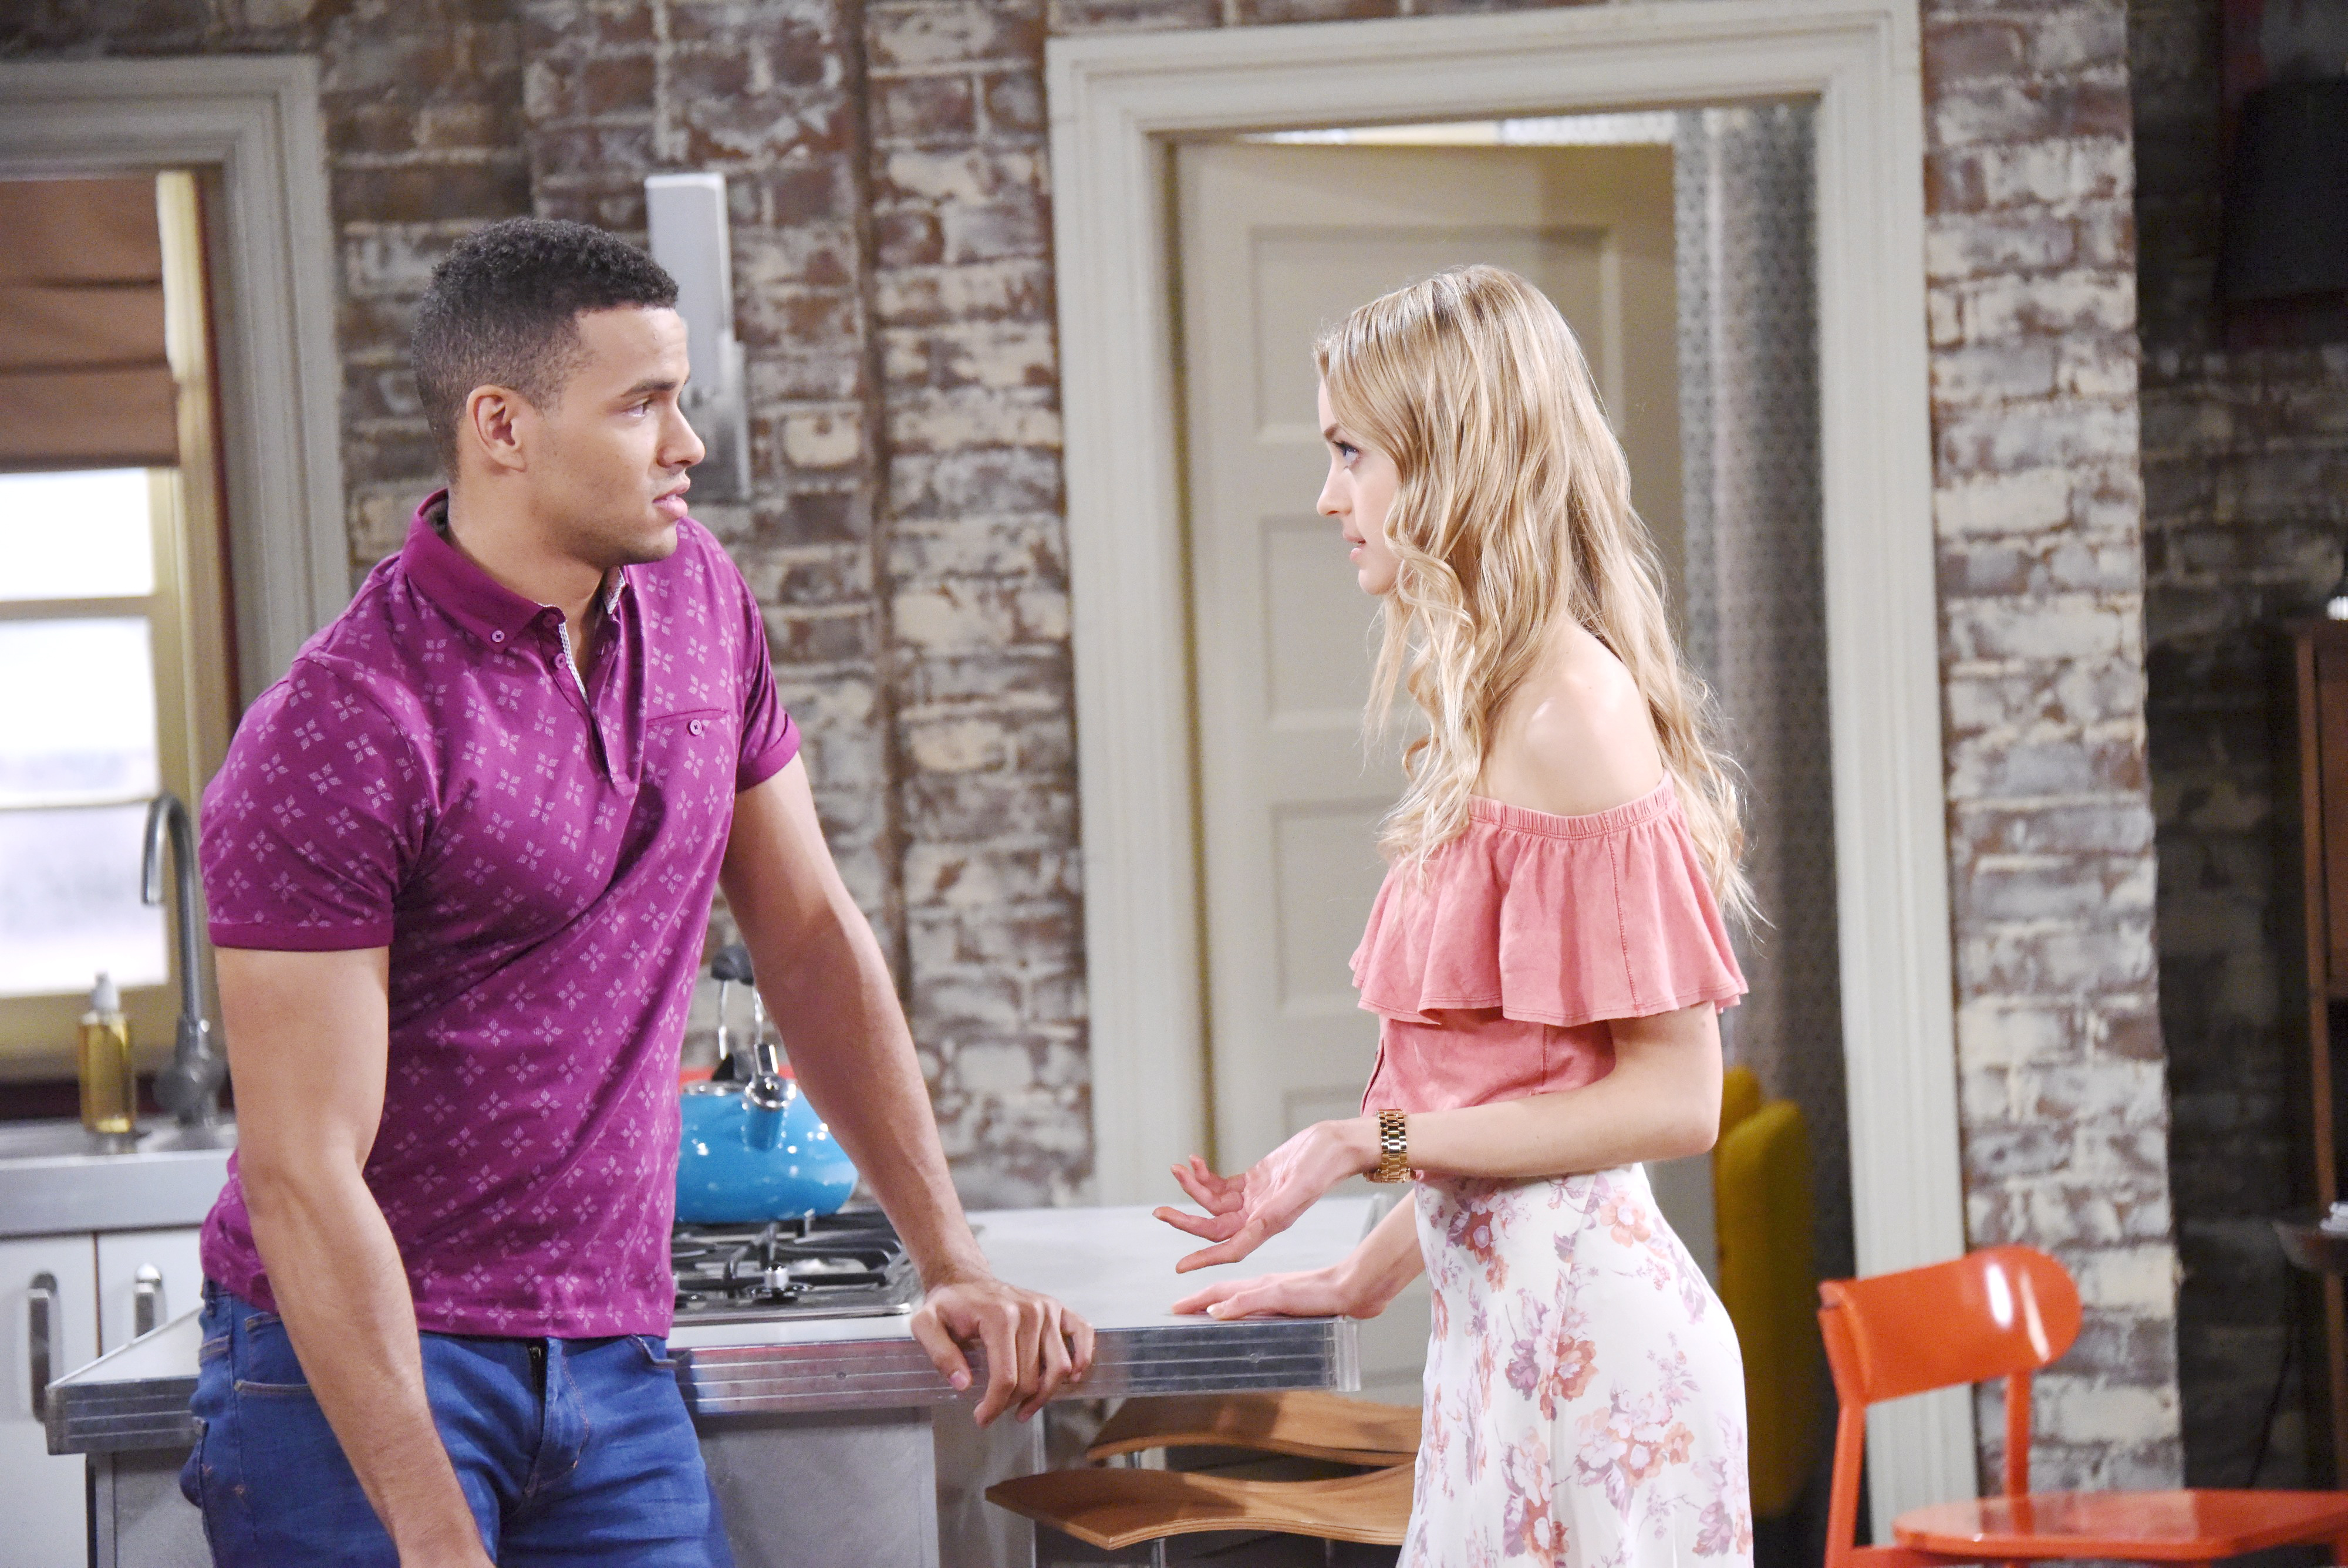 Days of Our Lives Spoilers: Theo admits he wants to get back together with Claire